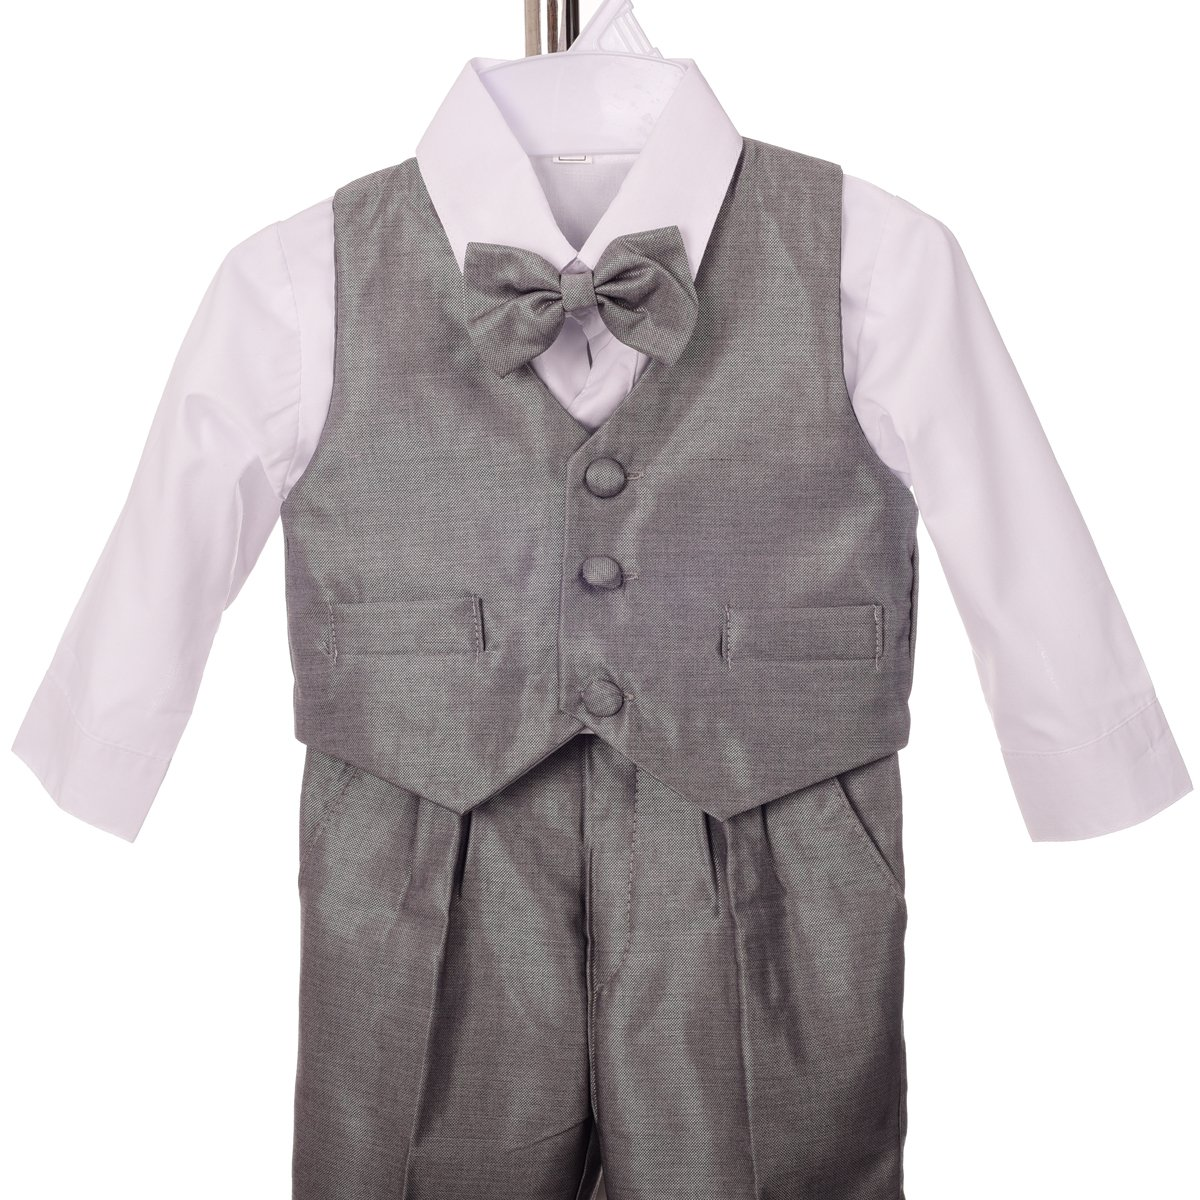 Lito Angels Baby Boys Formal Tuxedo Suits Wedding Christening Outfits No Tail 5 Piece Set 022